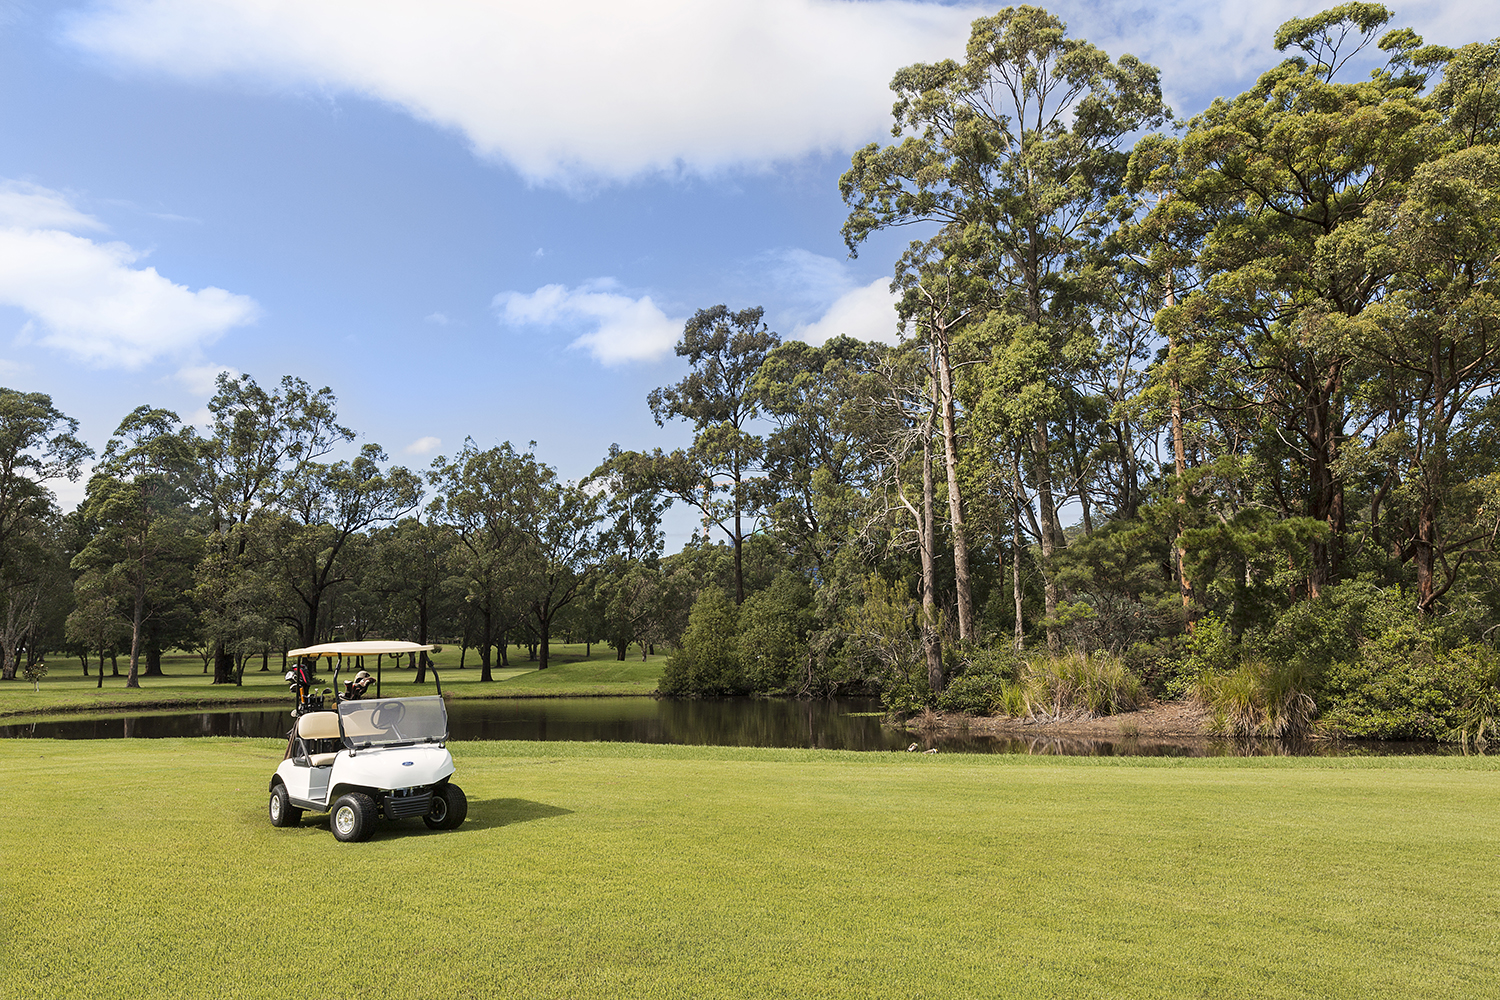 golf-cart-group-course-03